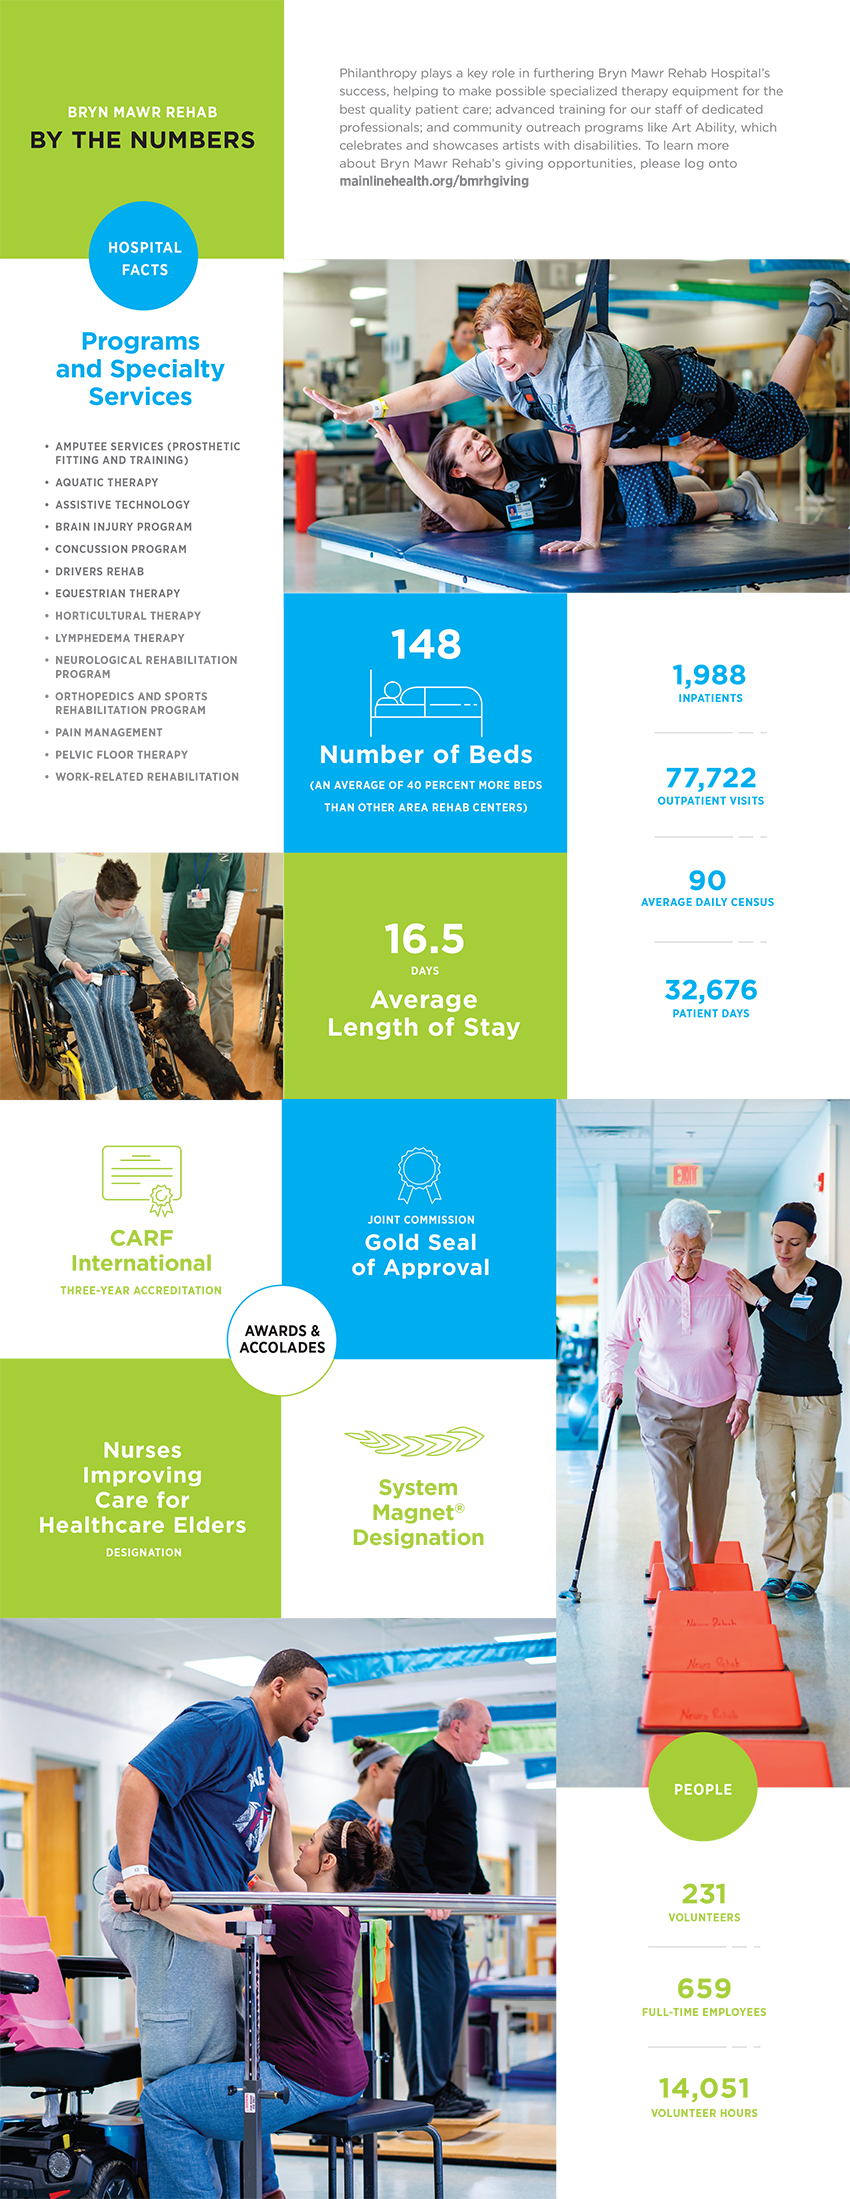 Bryn Mawr Rehab, by the numbers infographic about philanthropy, programs and services, awards and accolades, and the people both patients and workers